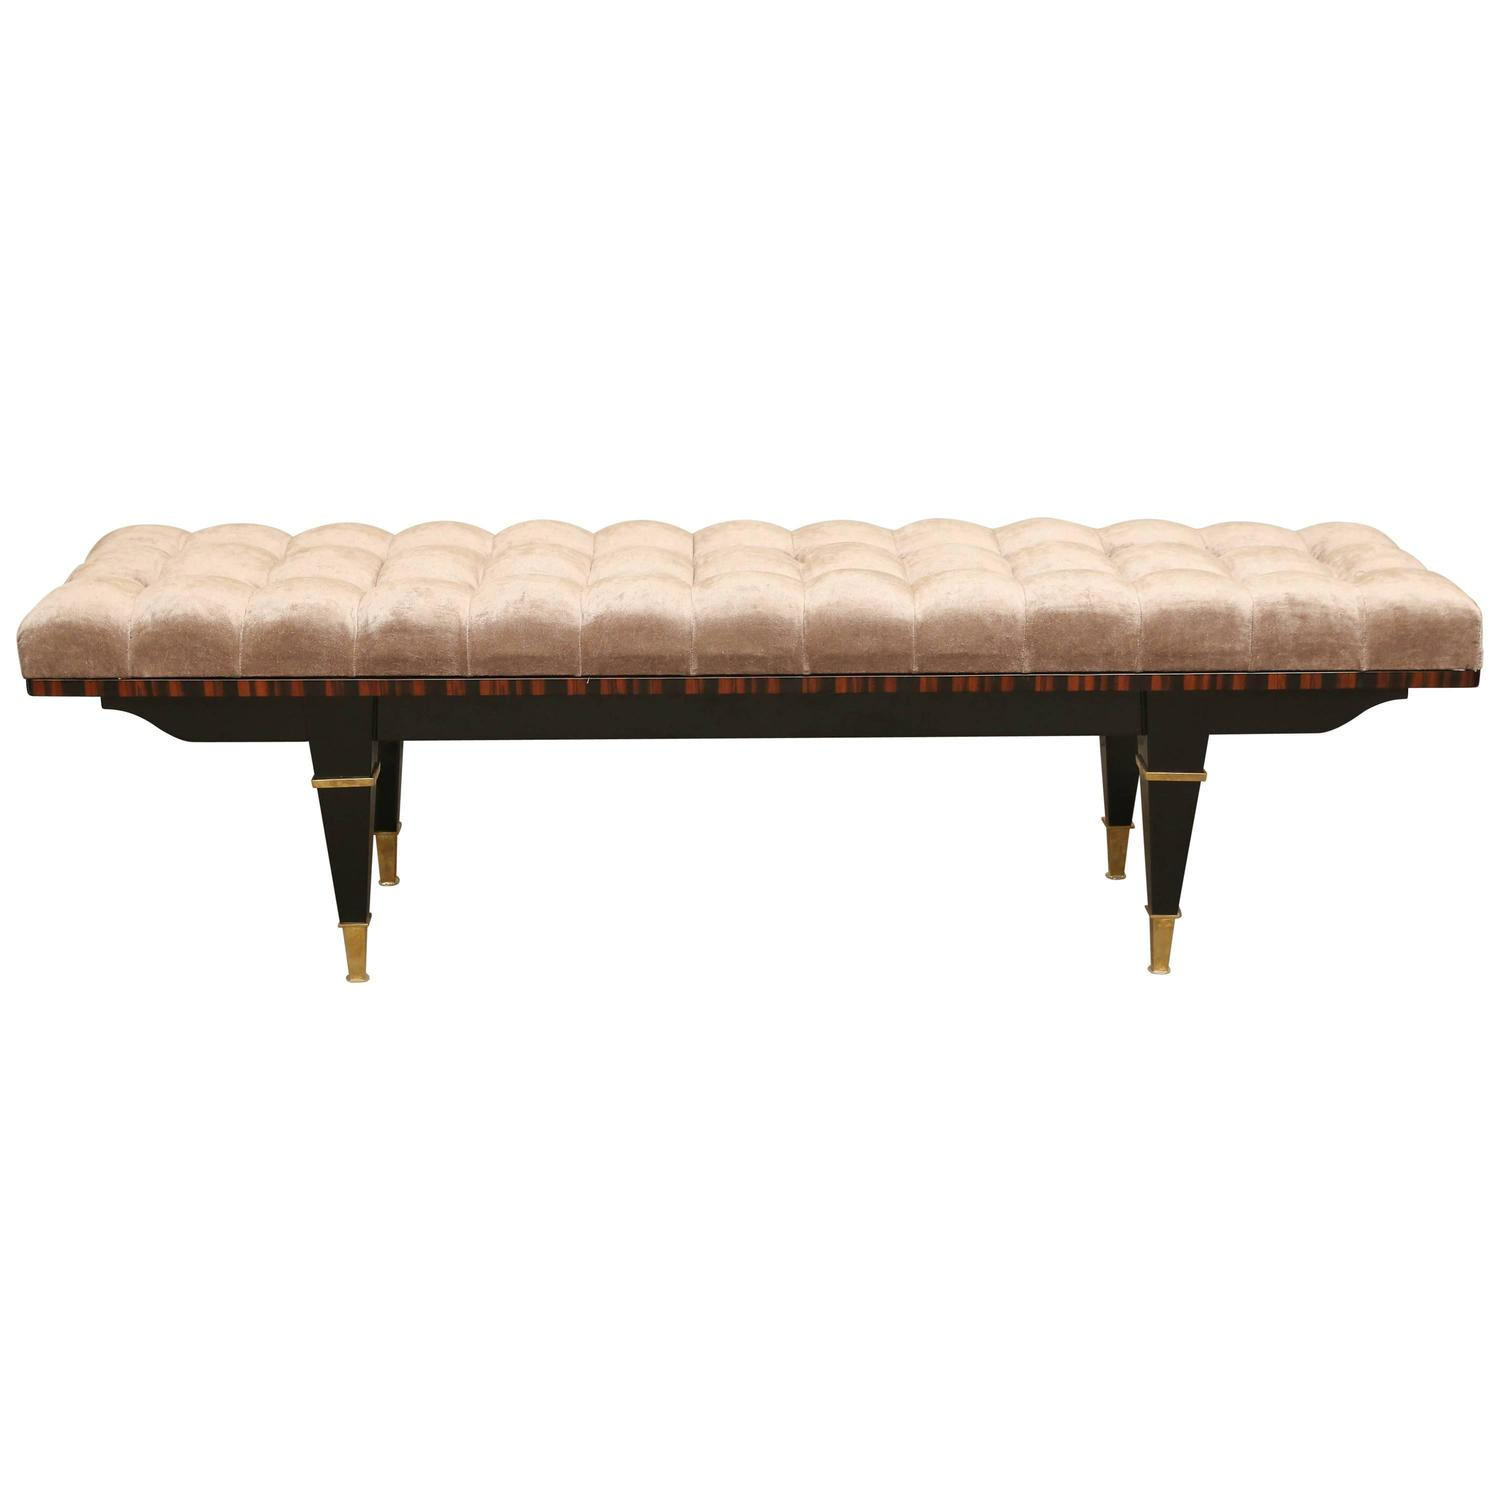 Art Deco Benches 28 Images Art Deco Bench At 1stdibs Sculptural Art Deco Bench At 1stdibs